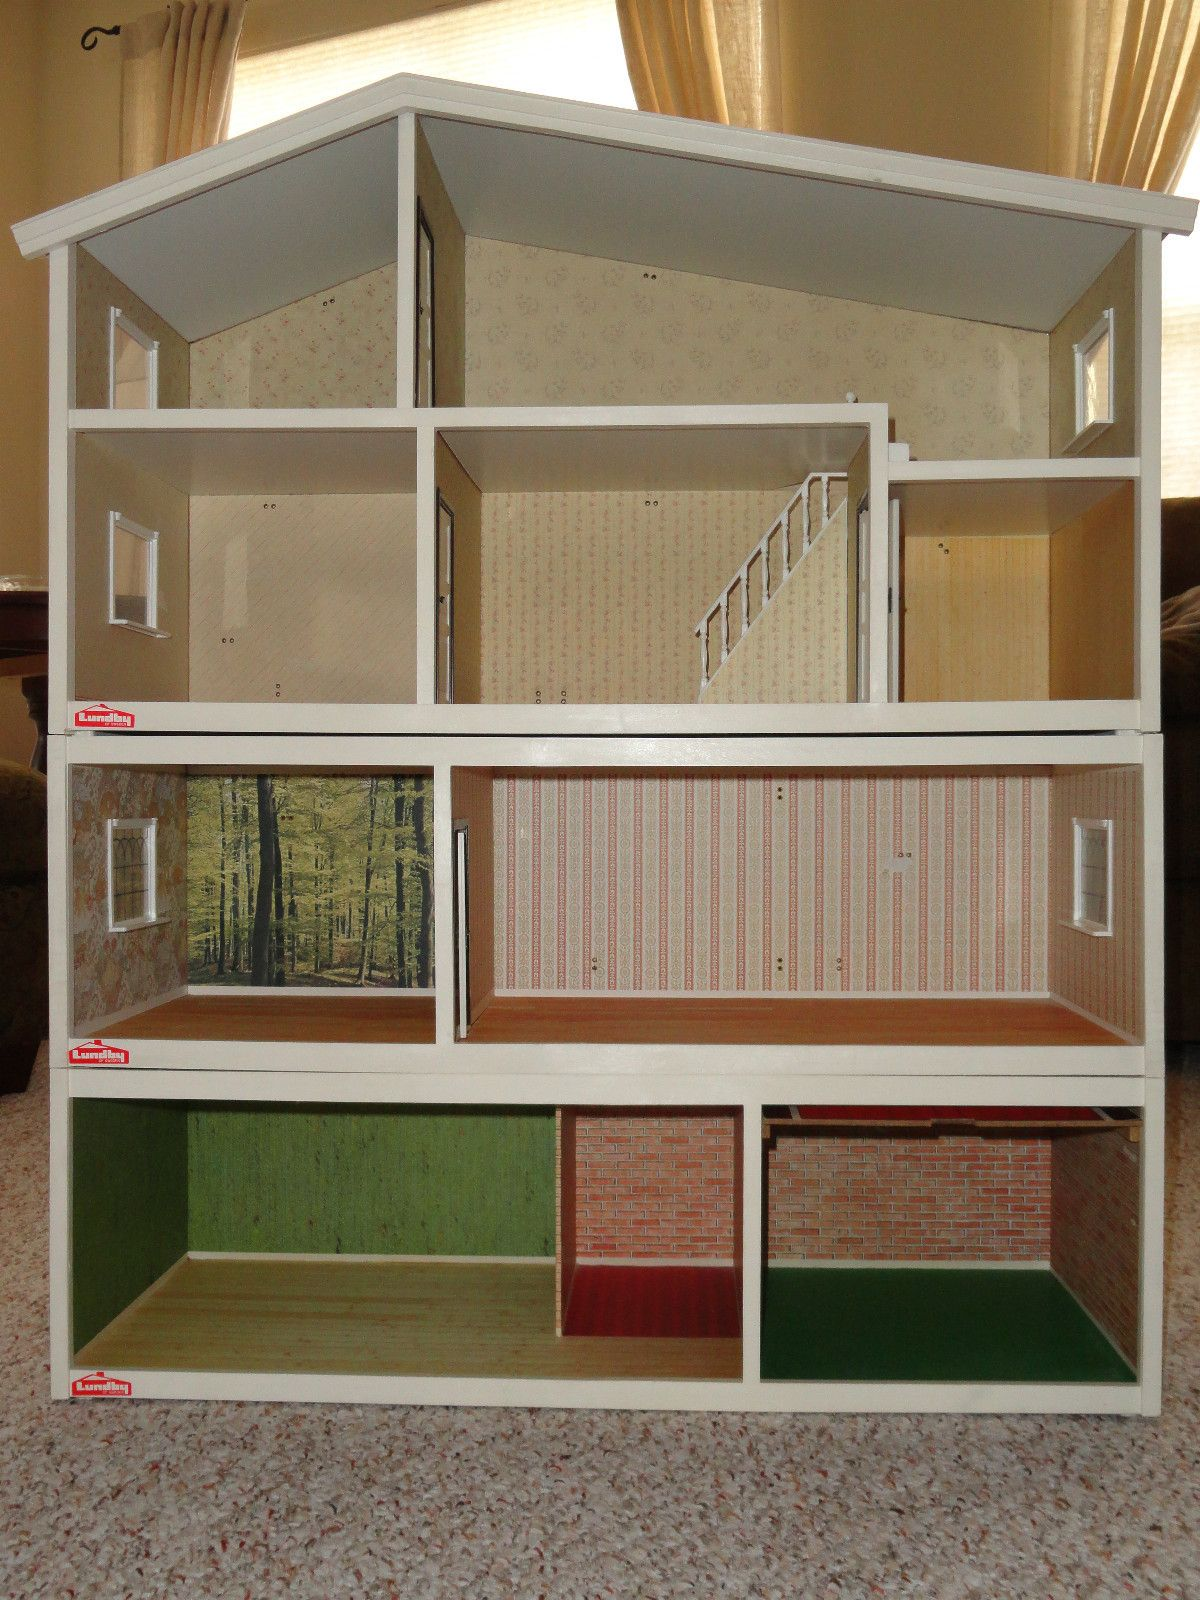 Details About Vintage Lundby 4 Story Electic Dollhouse With Garage